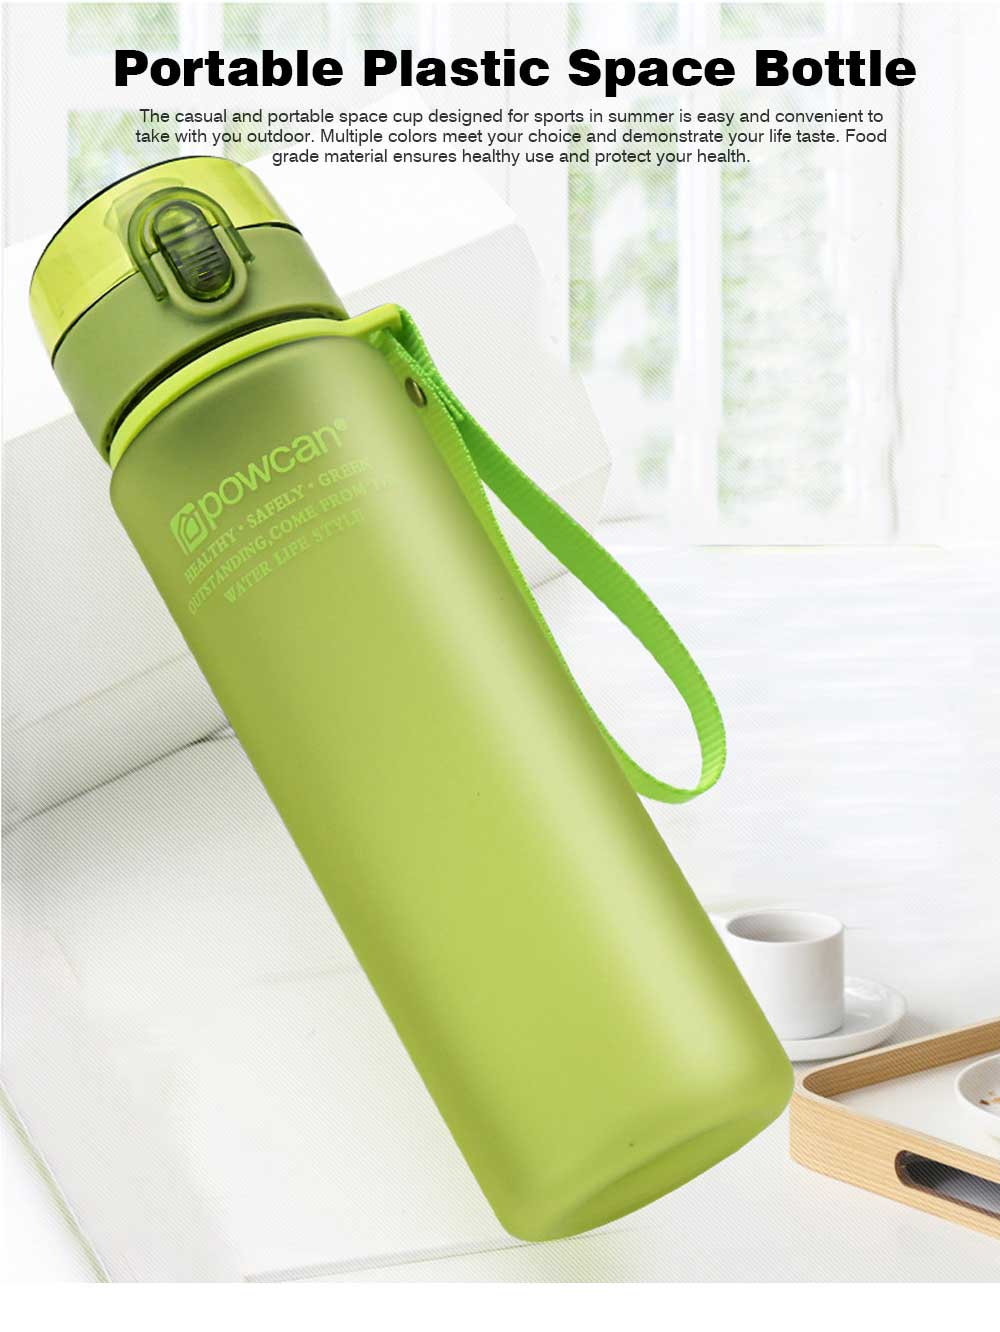 Portable Plastic Space Bottle of Sports Style for Summer, Creative Powcan Cup Children Cup for Students' Use PC Cups 7